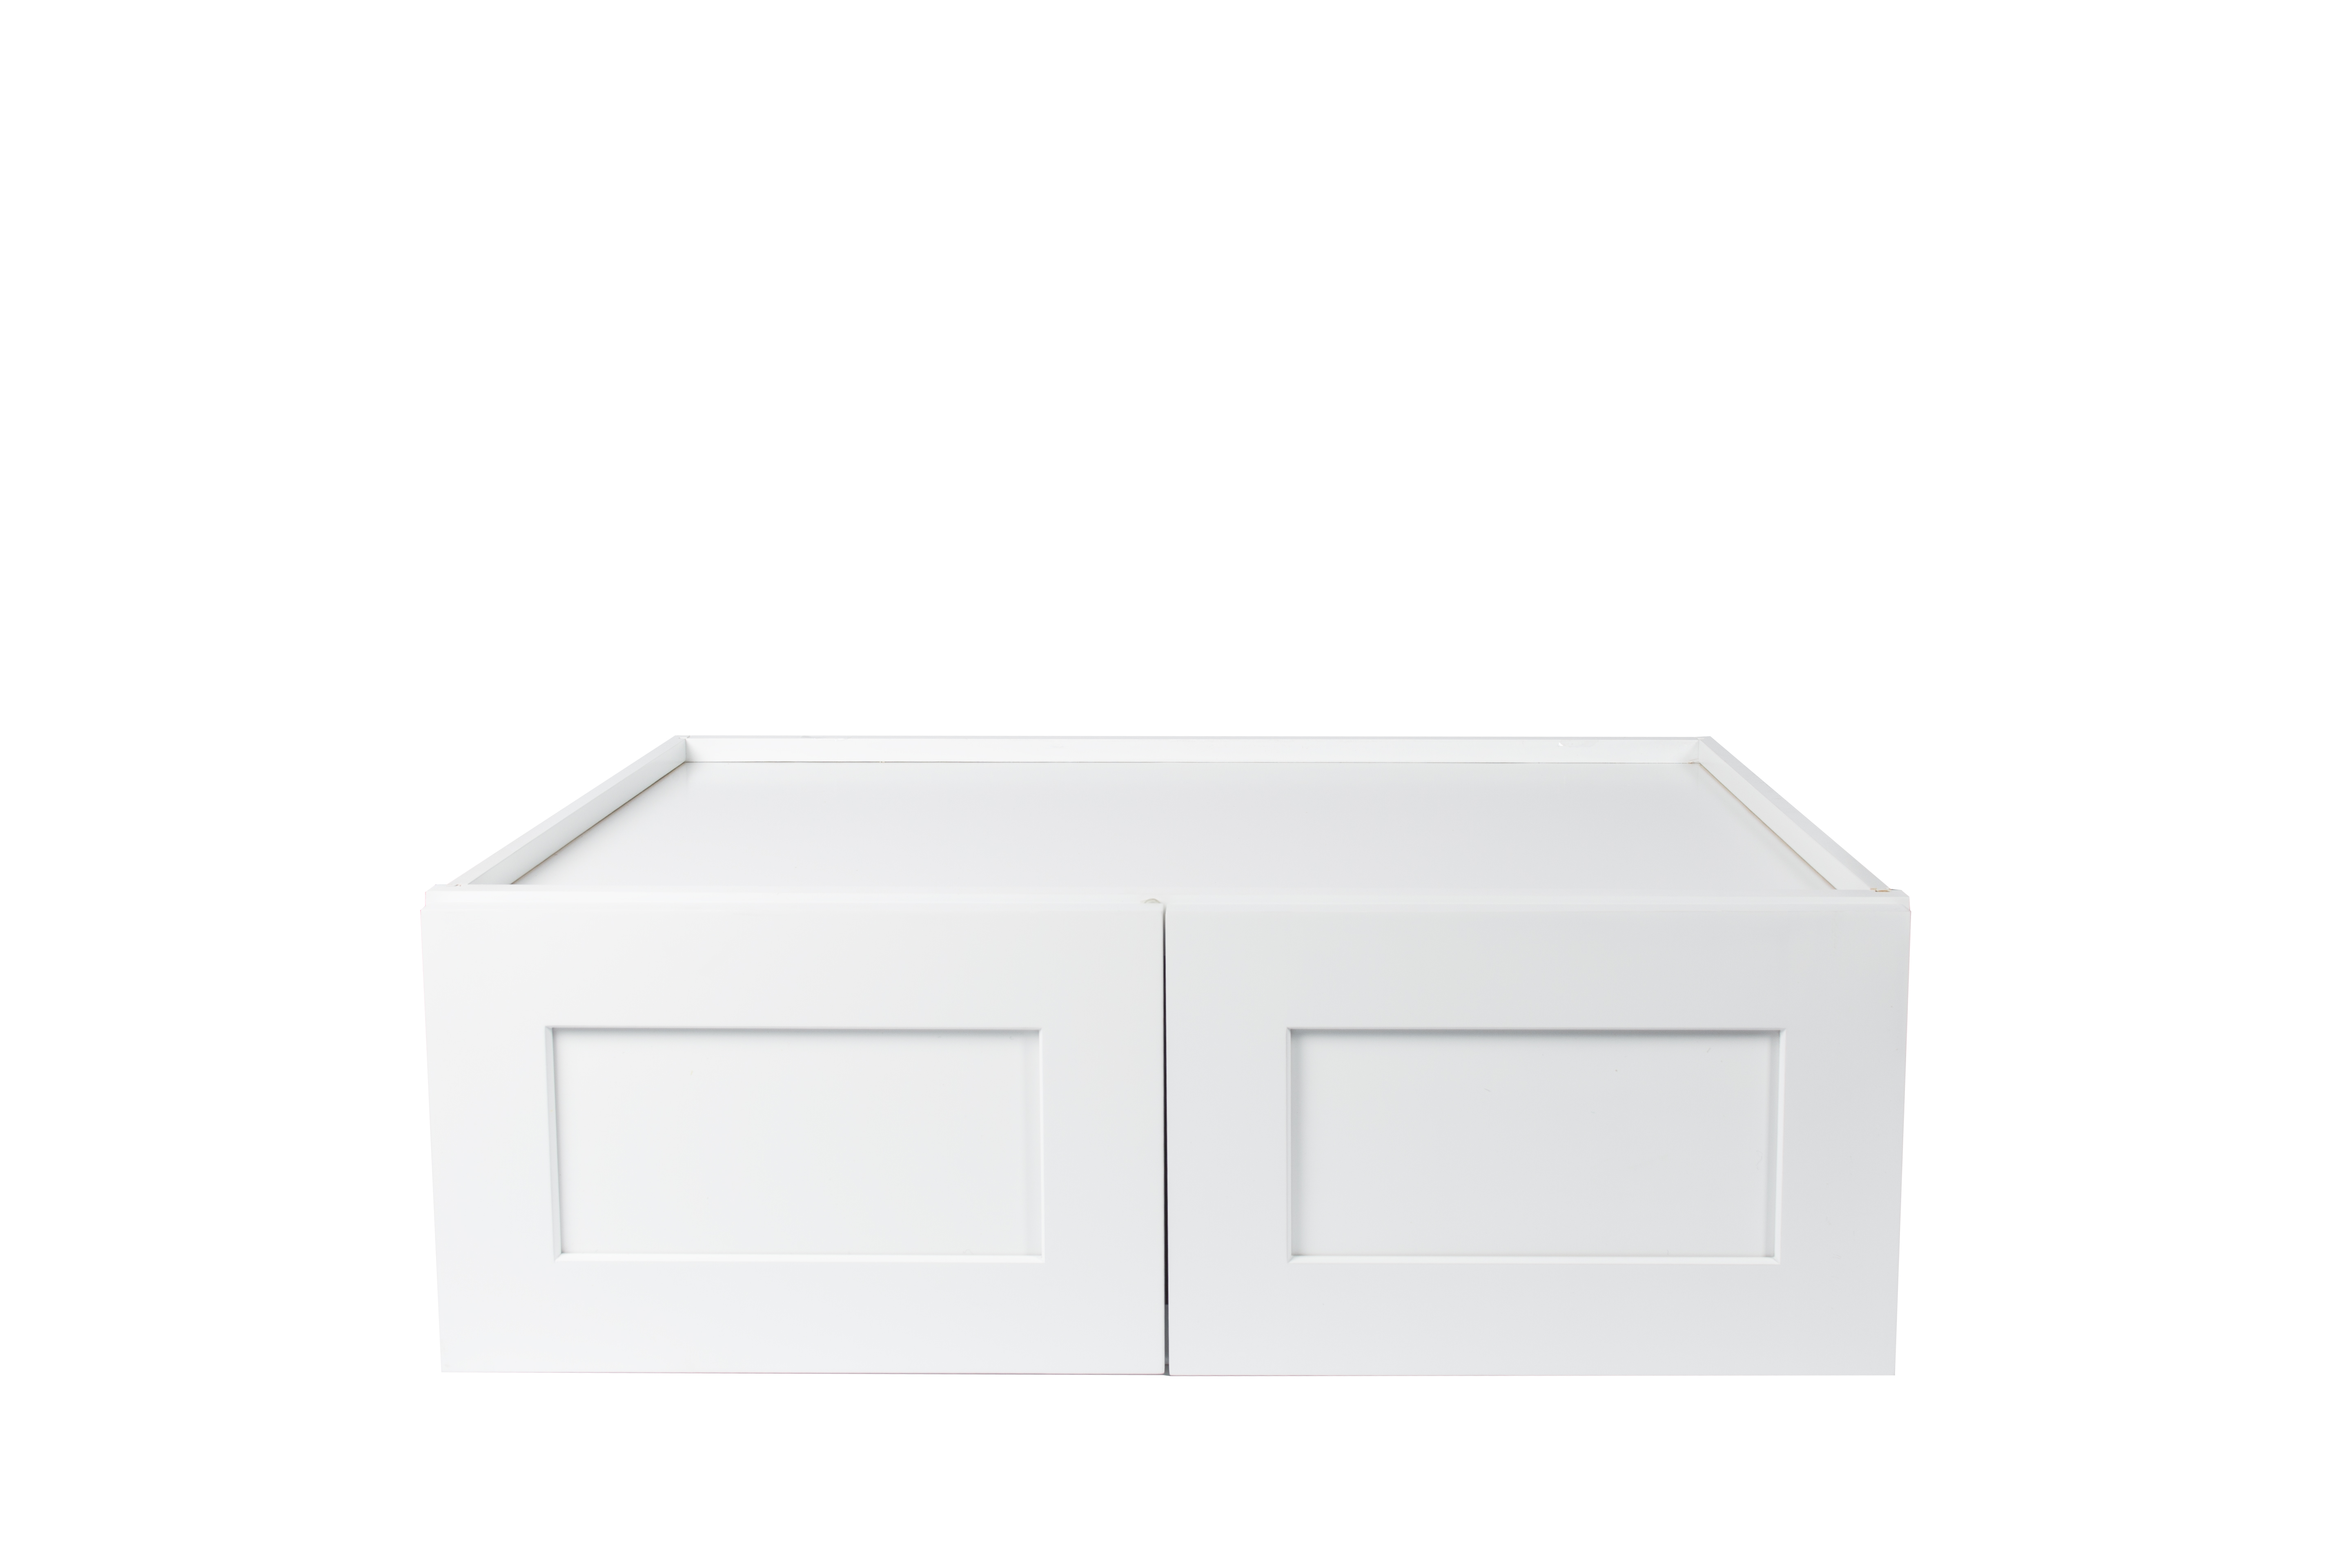 Ready to Assemble 30x18x12 in. Shaker High Double Door Wall Cabinet in White